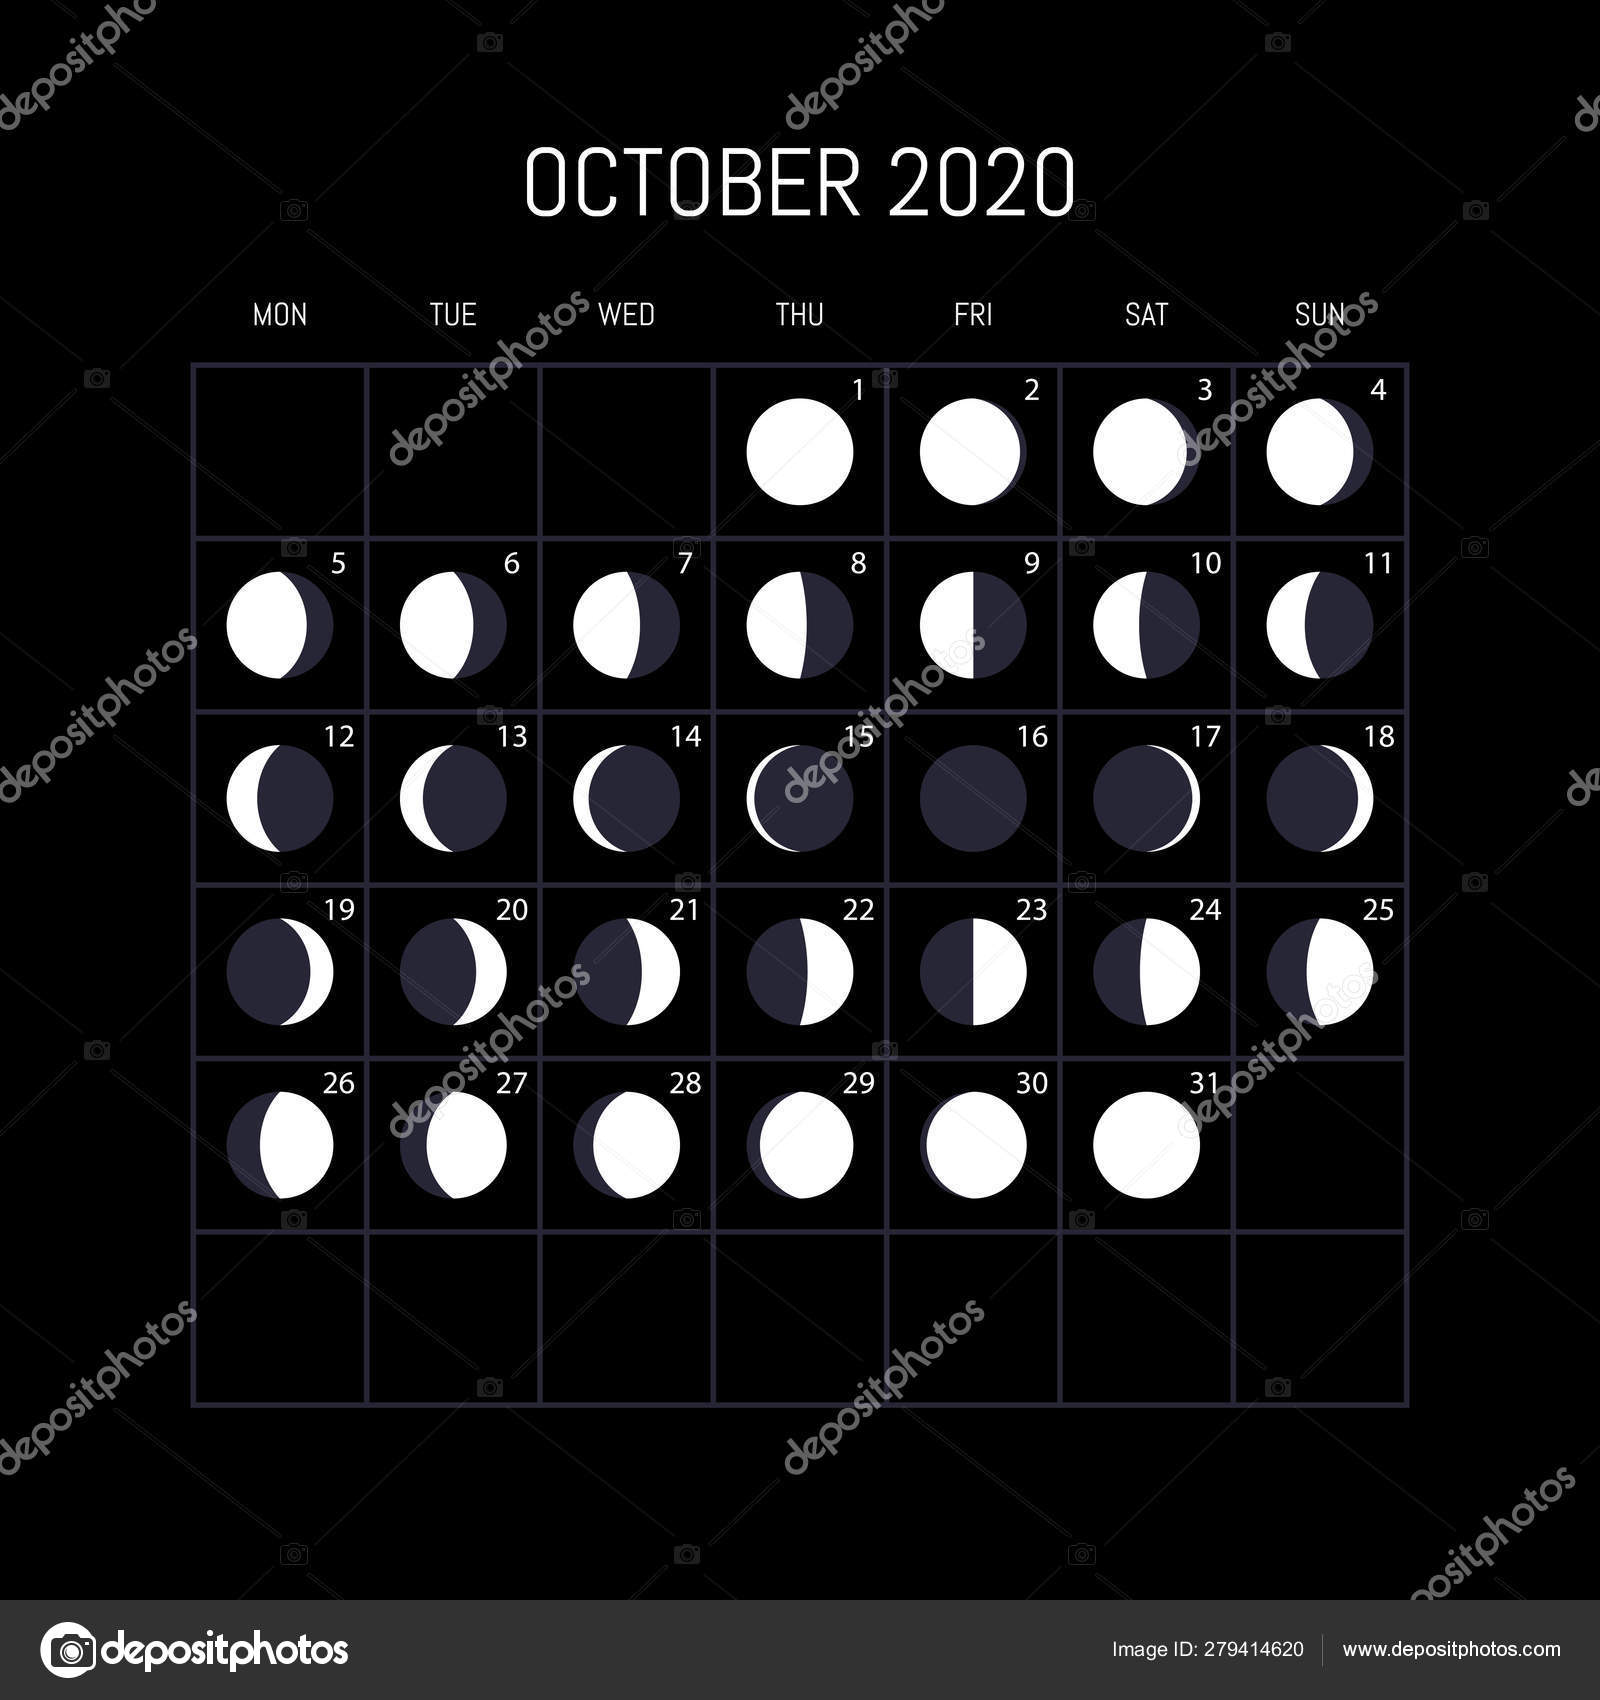 Moon Phase Calendar October 2020 Moon phases calendar for 2020 year. October. Night background de